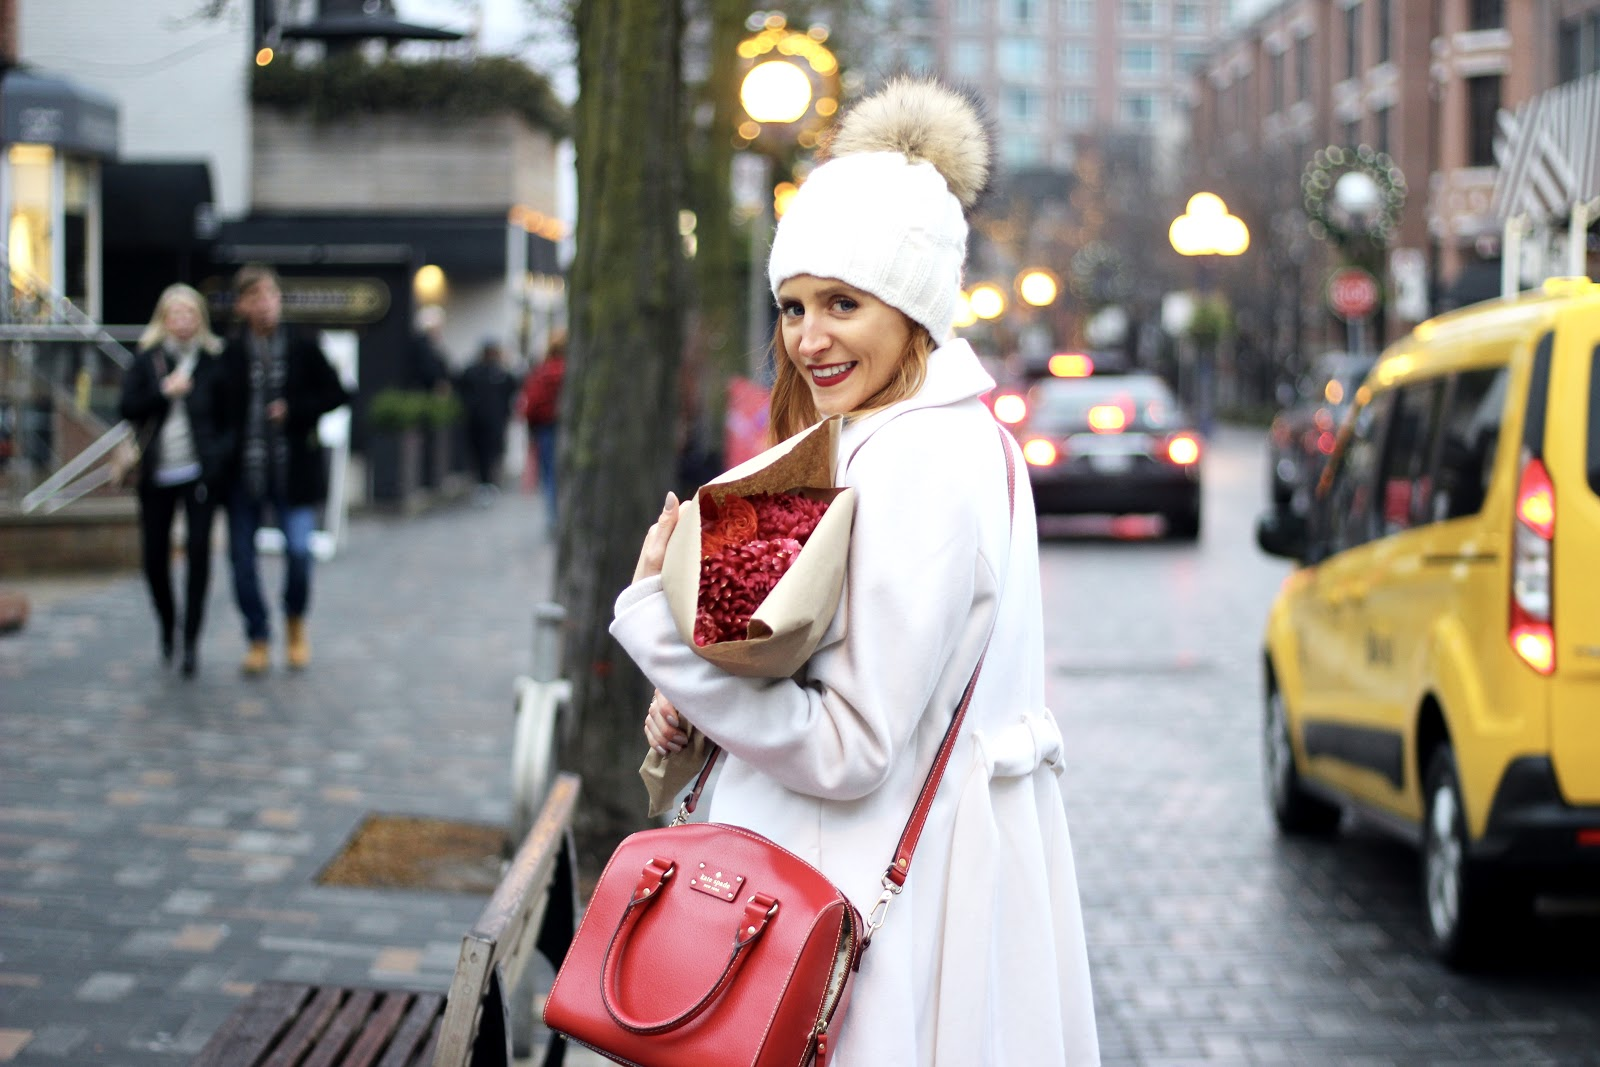 Bloor Yorkville, Parajumpers hat, winter white, winter style, red and white, holiday style.